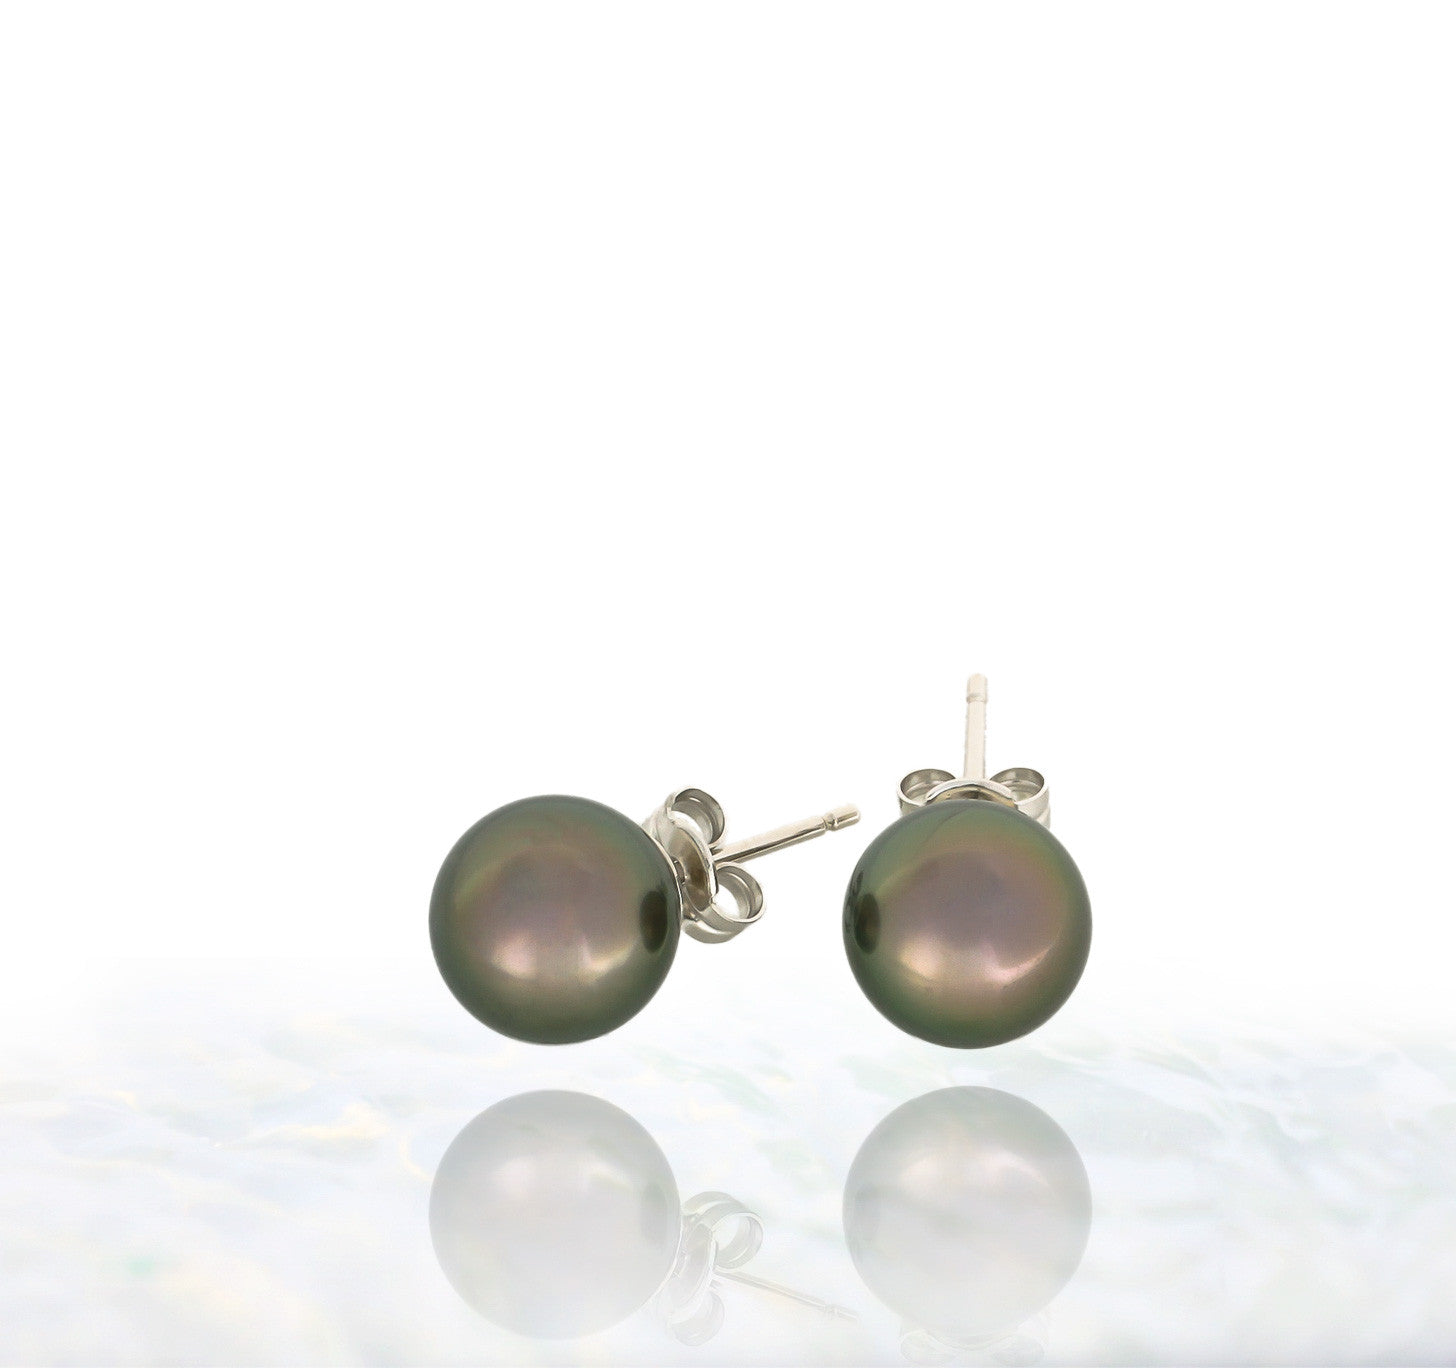 Tahitian pearl earrings - 18k white gold studs - EAWGPE00177